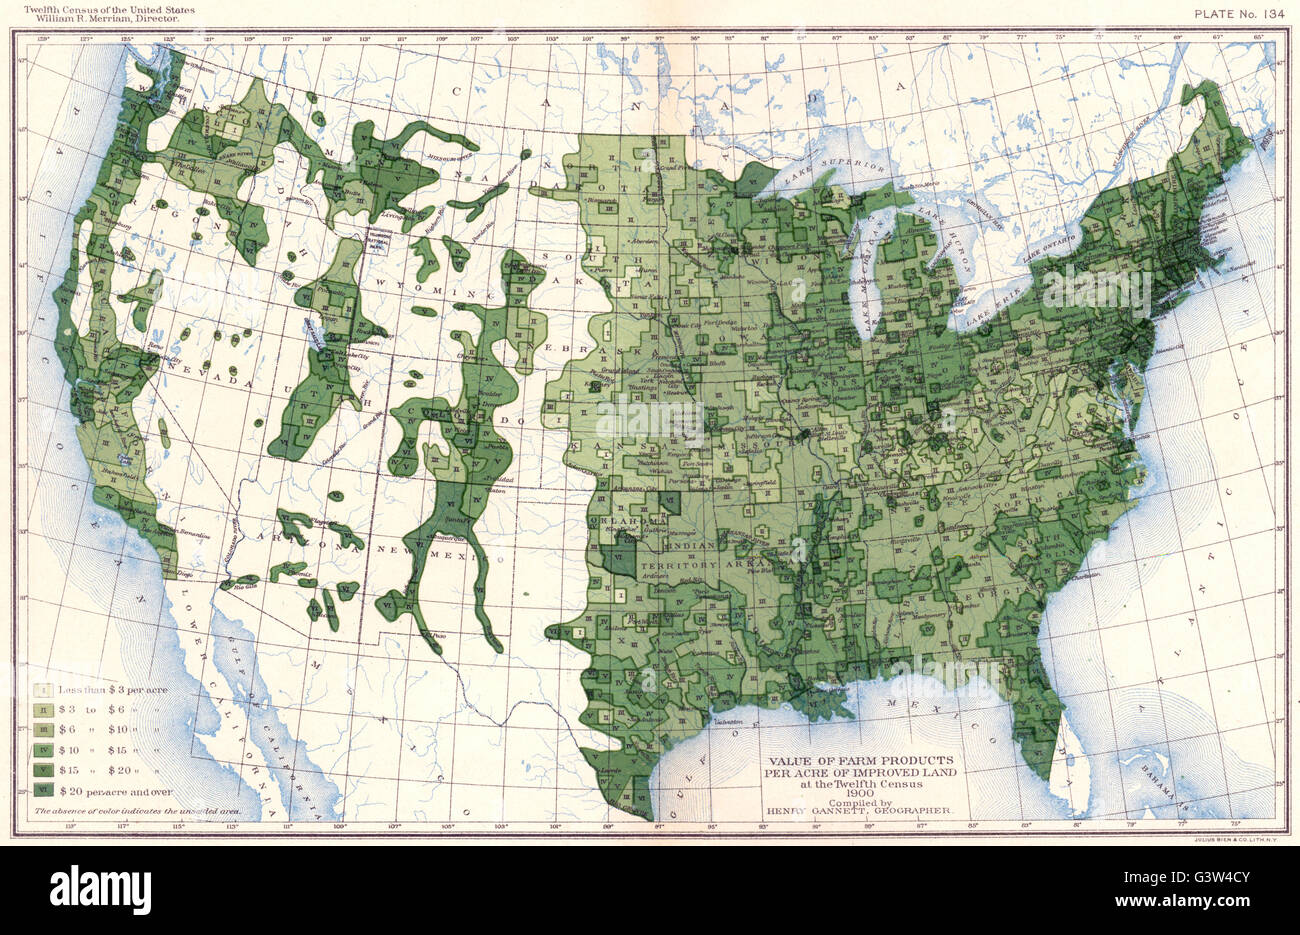 Stock Po Usa Value Of Farm Products Per Acre Improved Land At 12th Census 1900 Map